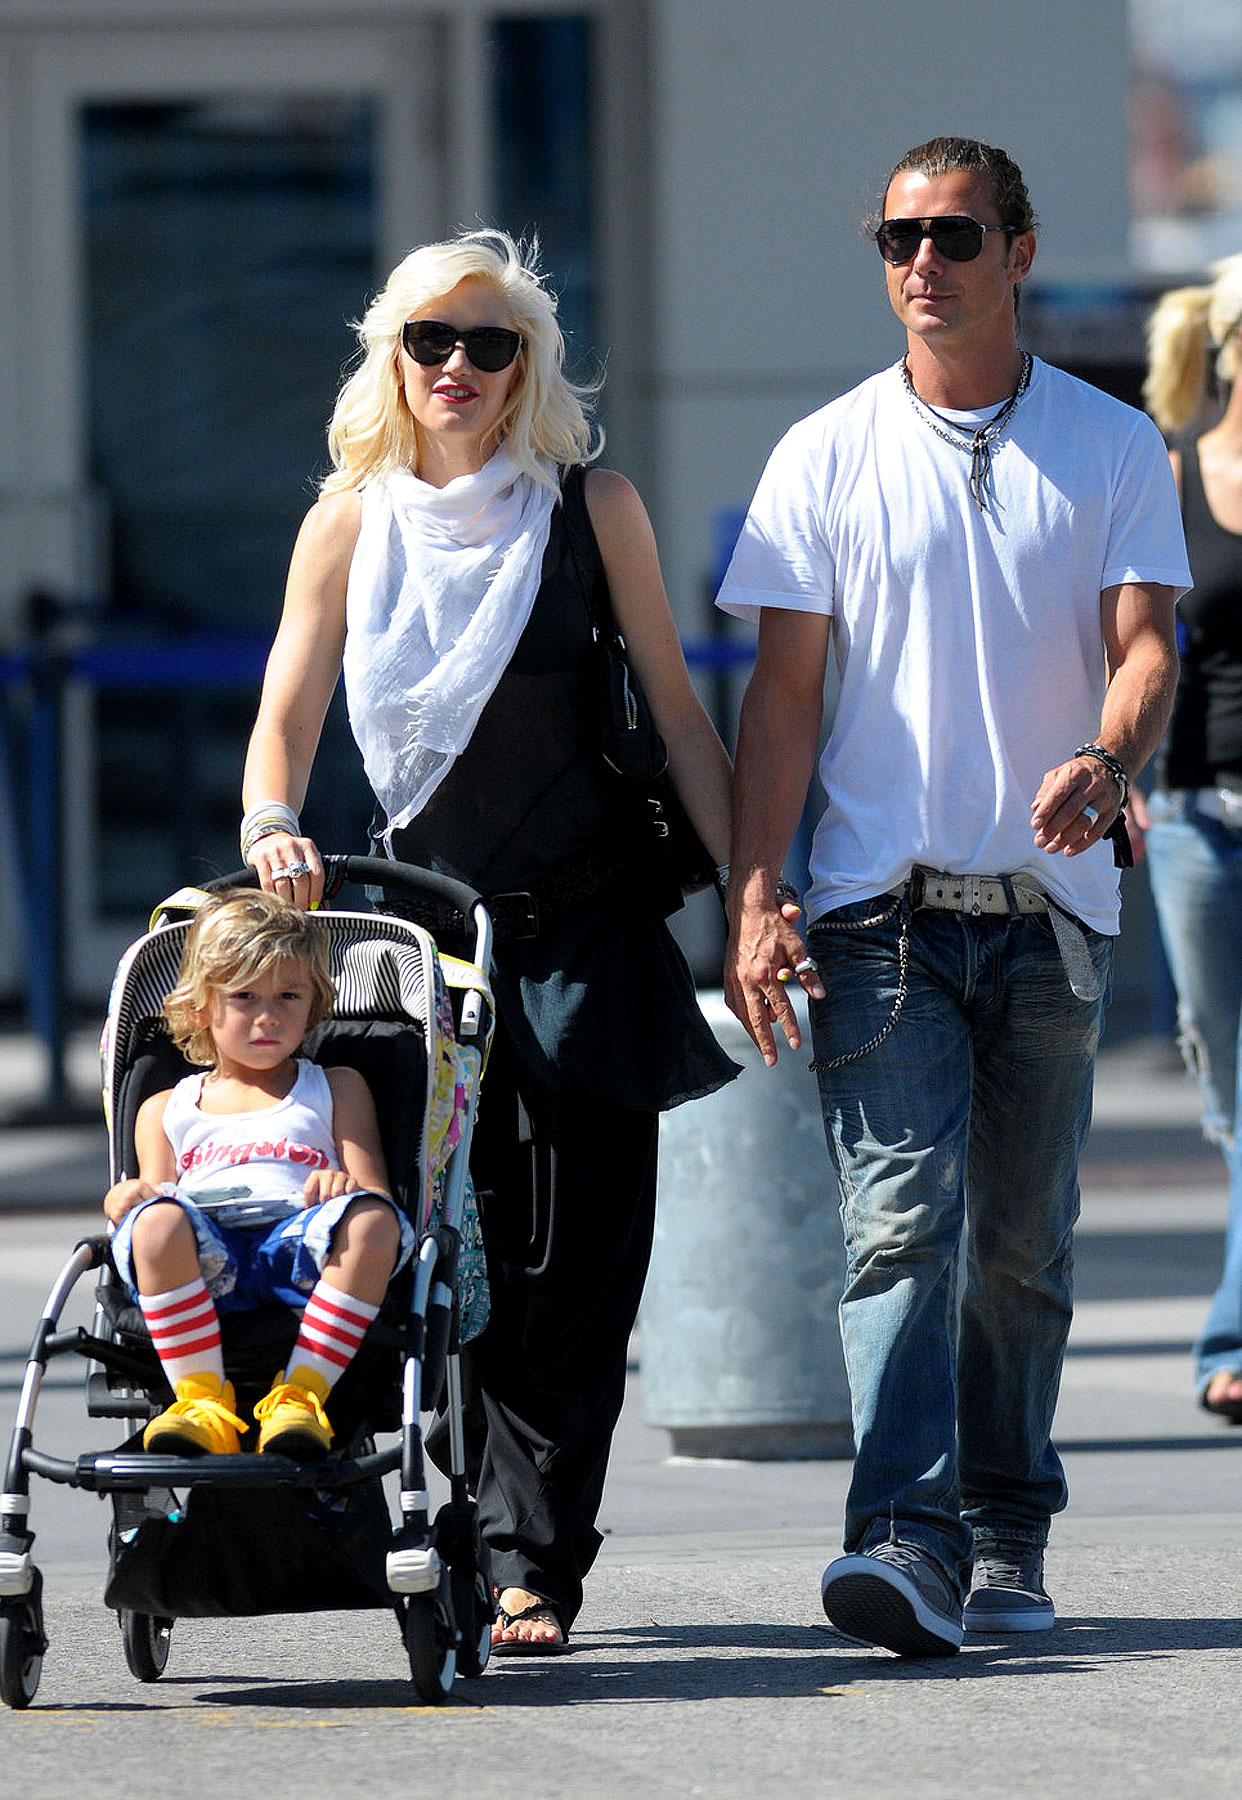 Gwen Stefani and Gavin Rossdale Have a Family Day